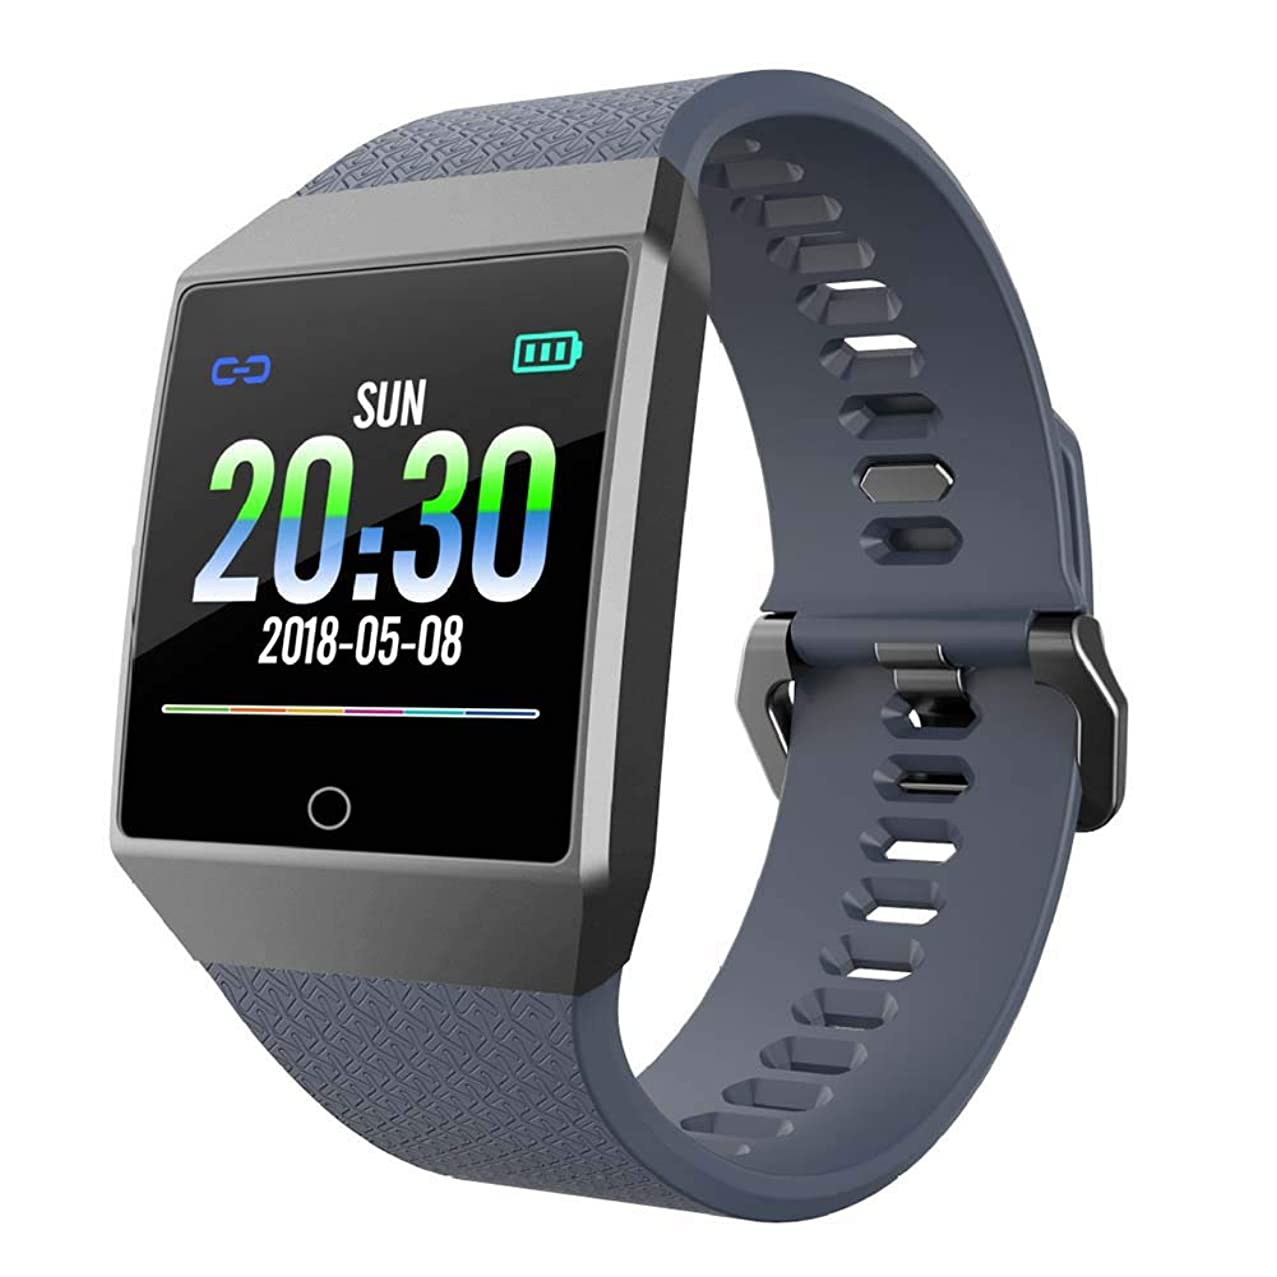 dulawei3 Waterproof 1.3inch Bluetooth Smart Bracelet Sports Watch with Heart Rate Activity Tracking Blood Pressure Sleep Monitor GPS Fitness Ultra-Long Battery Life for Android iOS Grey + Silver